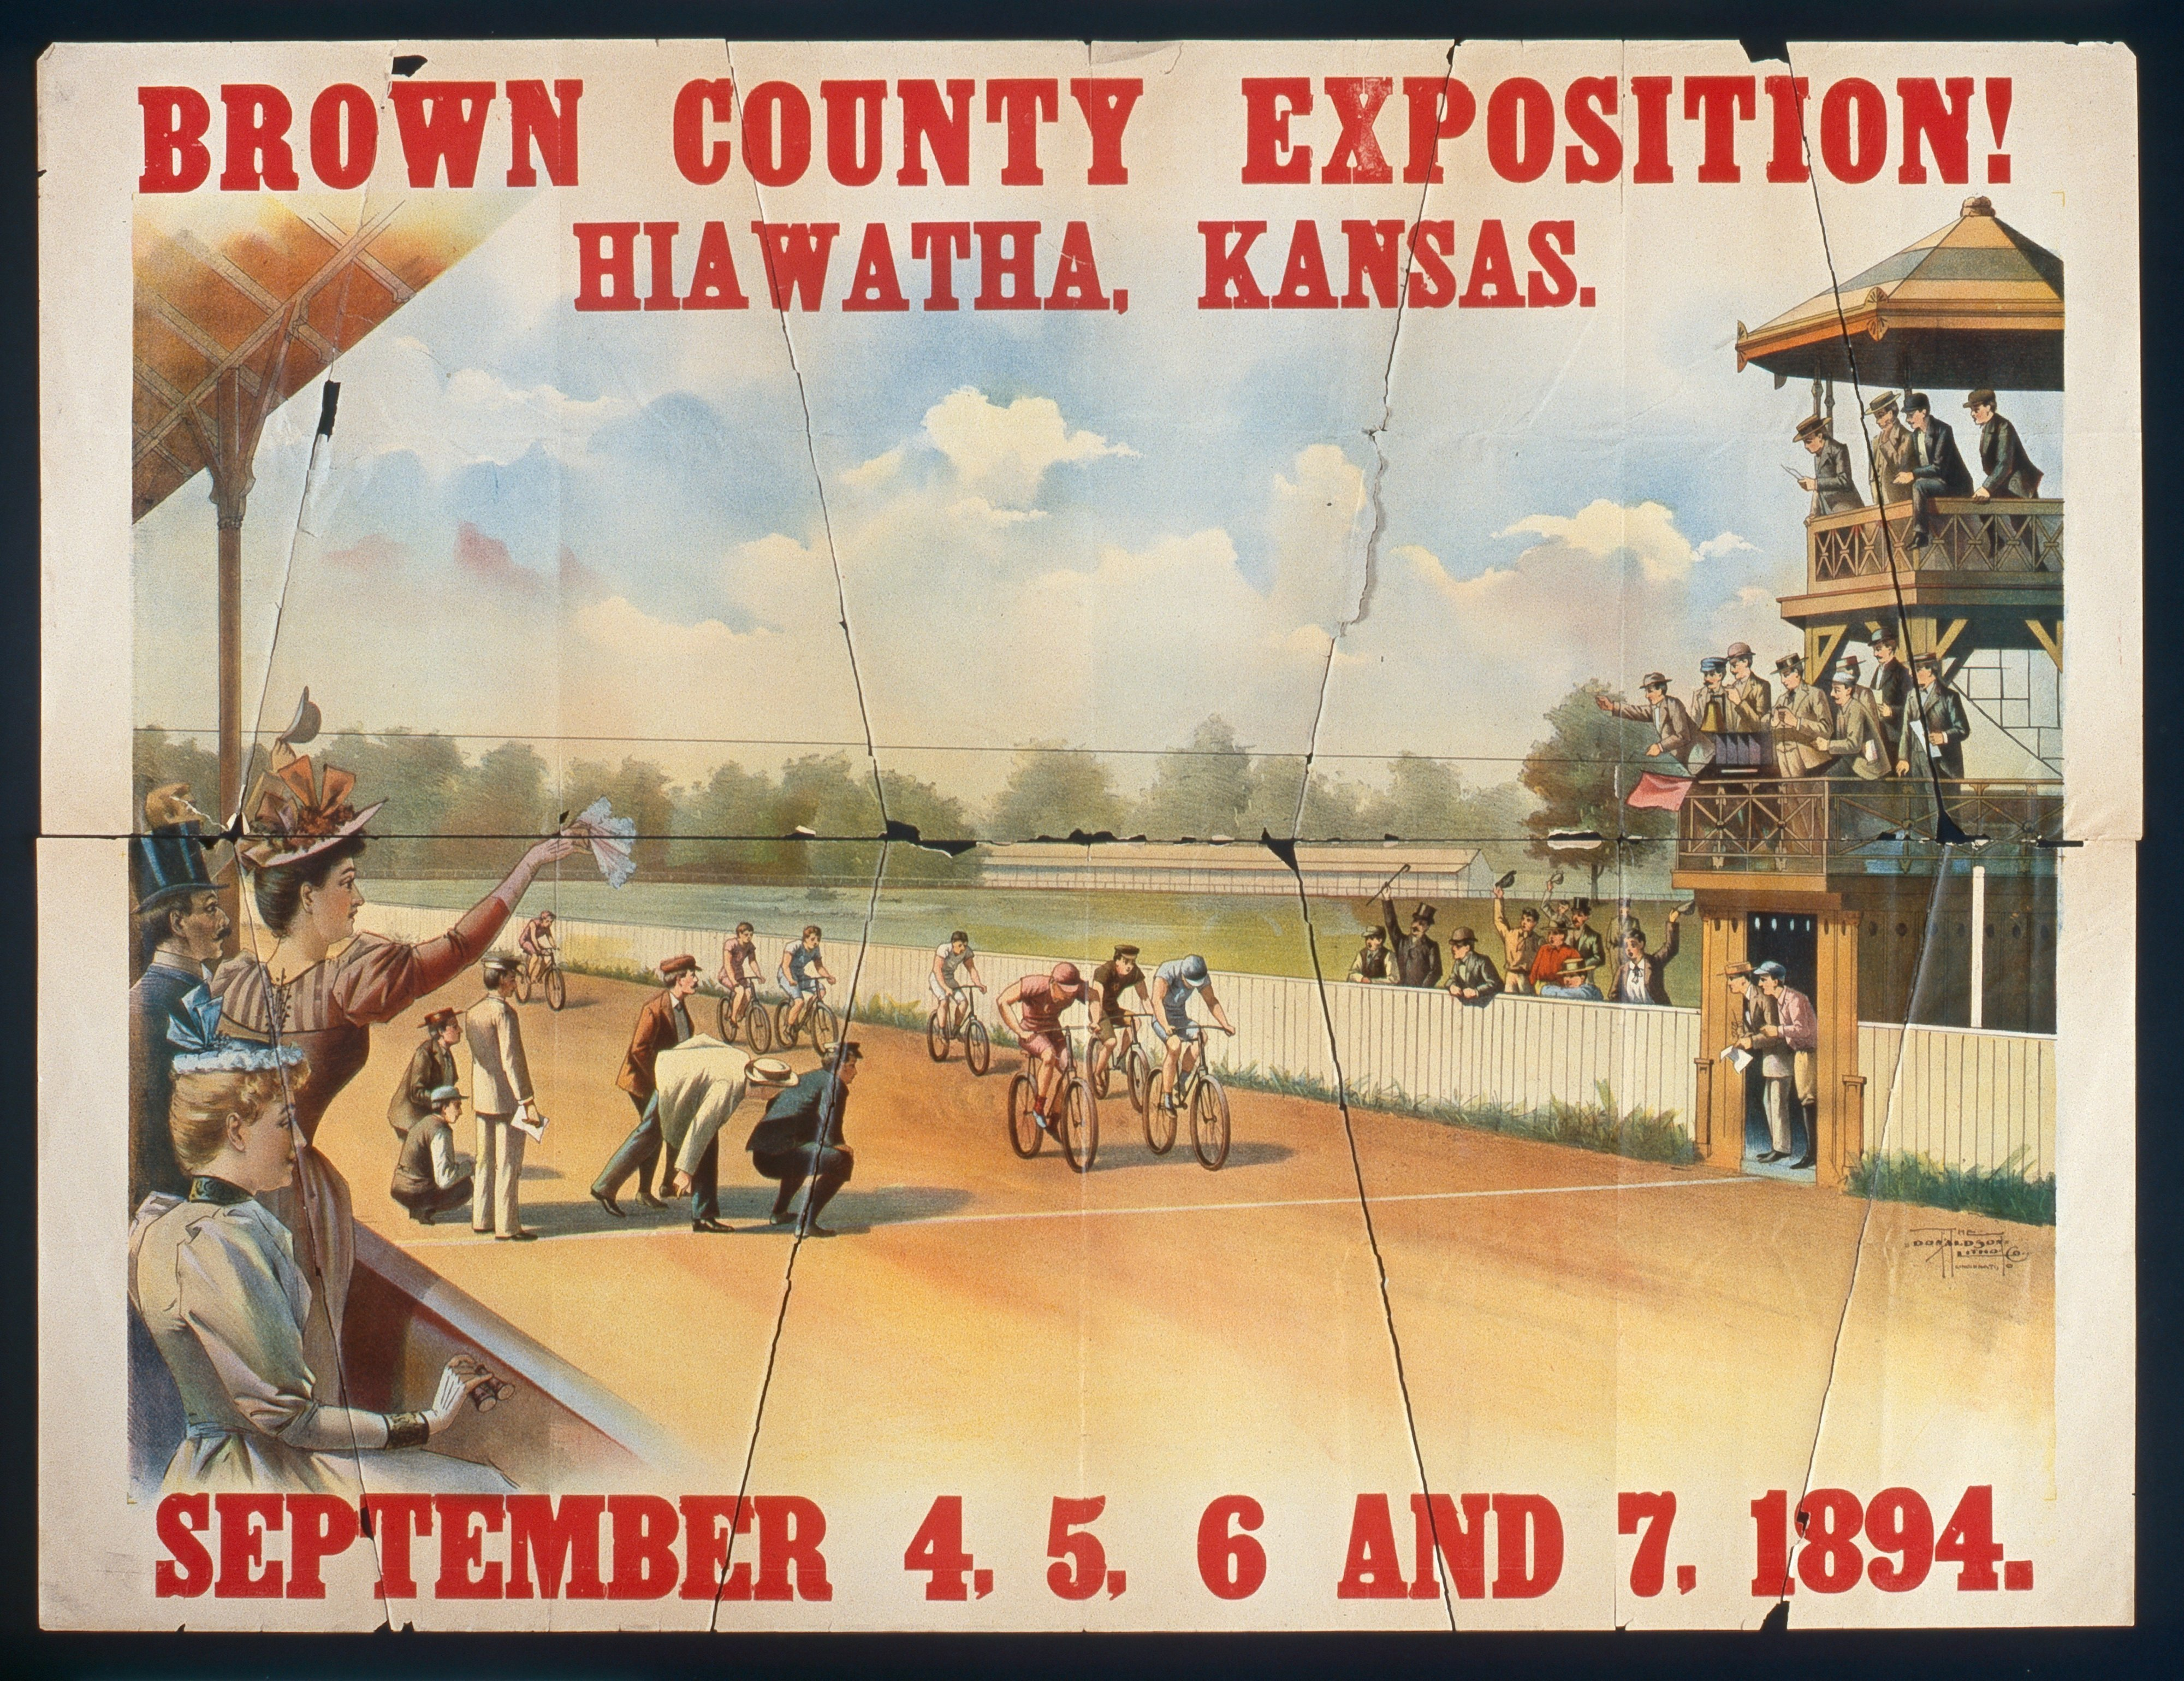 Brown County exposition